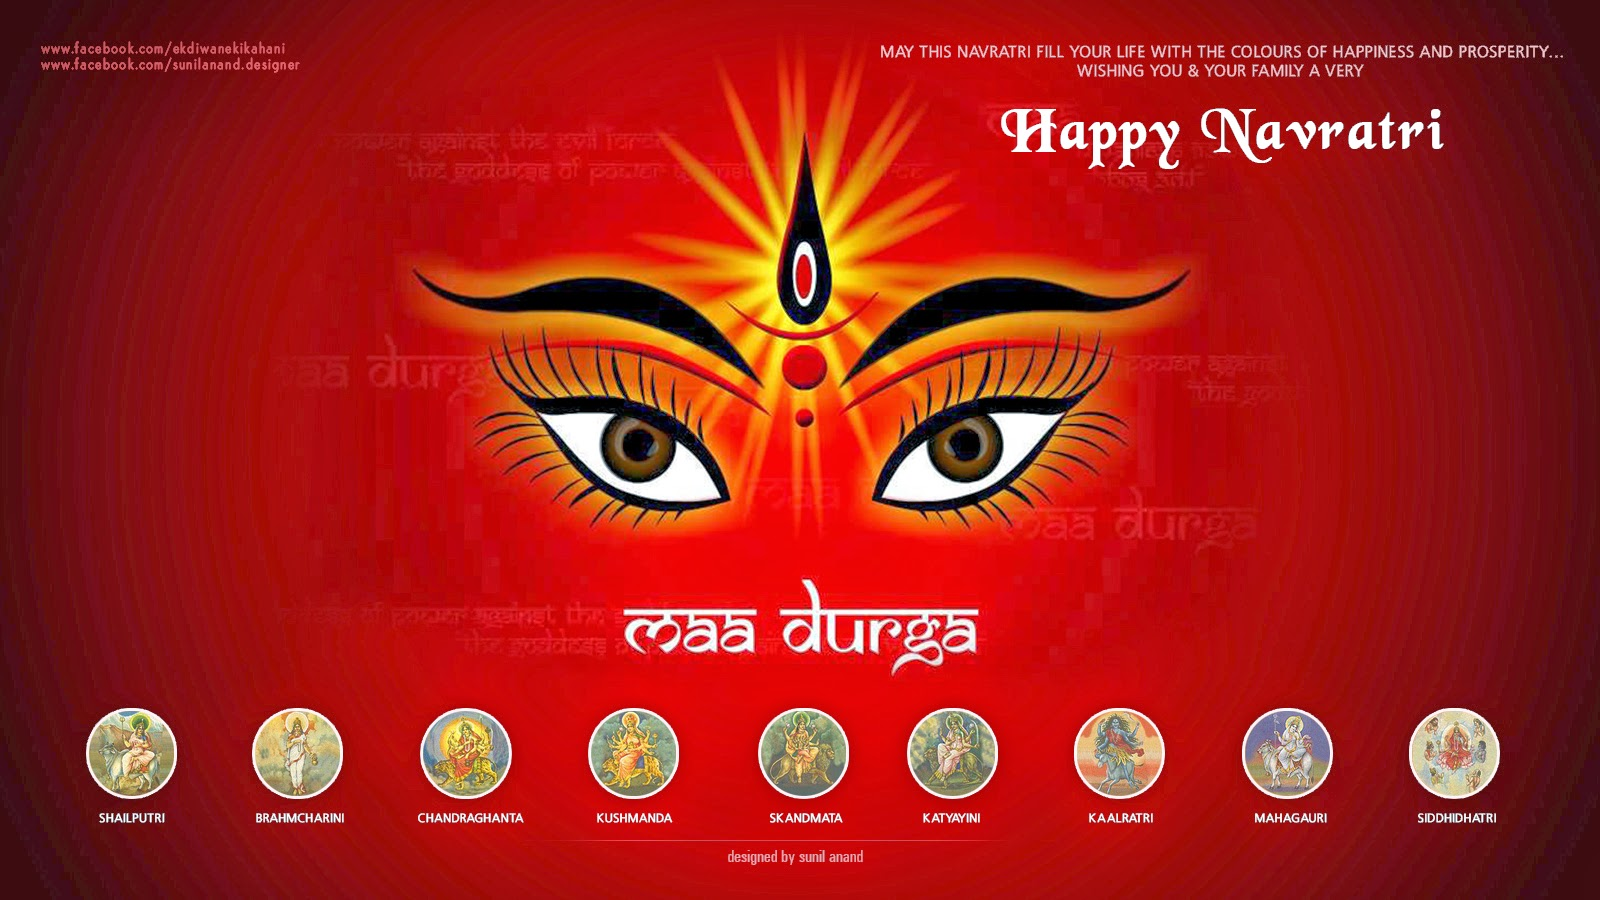 Most Inspiring Wallpaper Name Sunil - Happy+Navratri+Wallpaper+by+Sunil+Anand  Graphic_168498.jpg